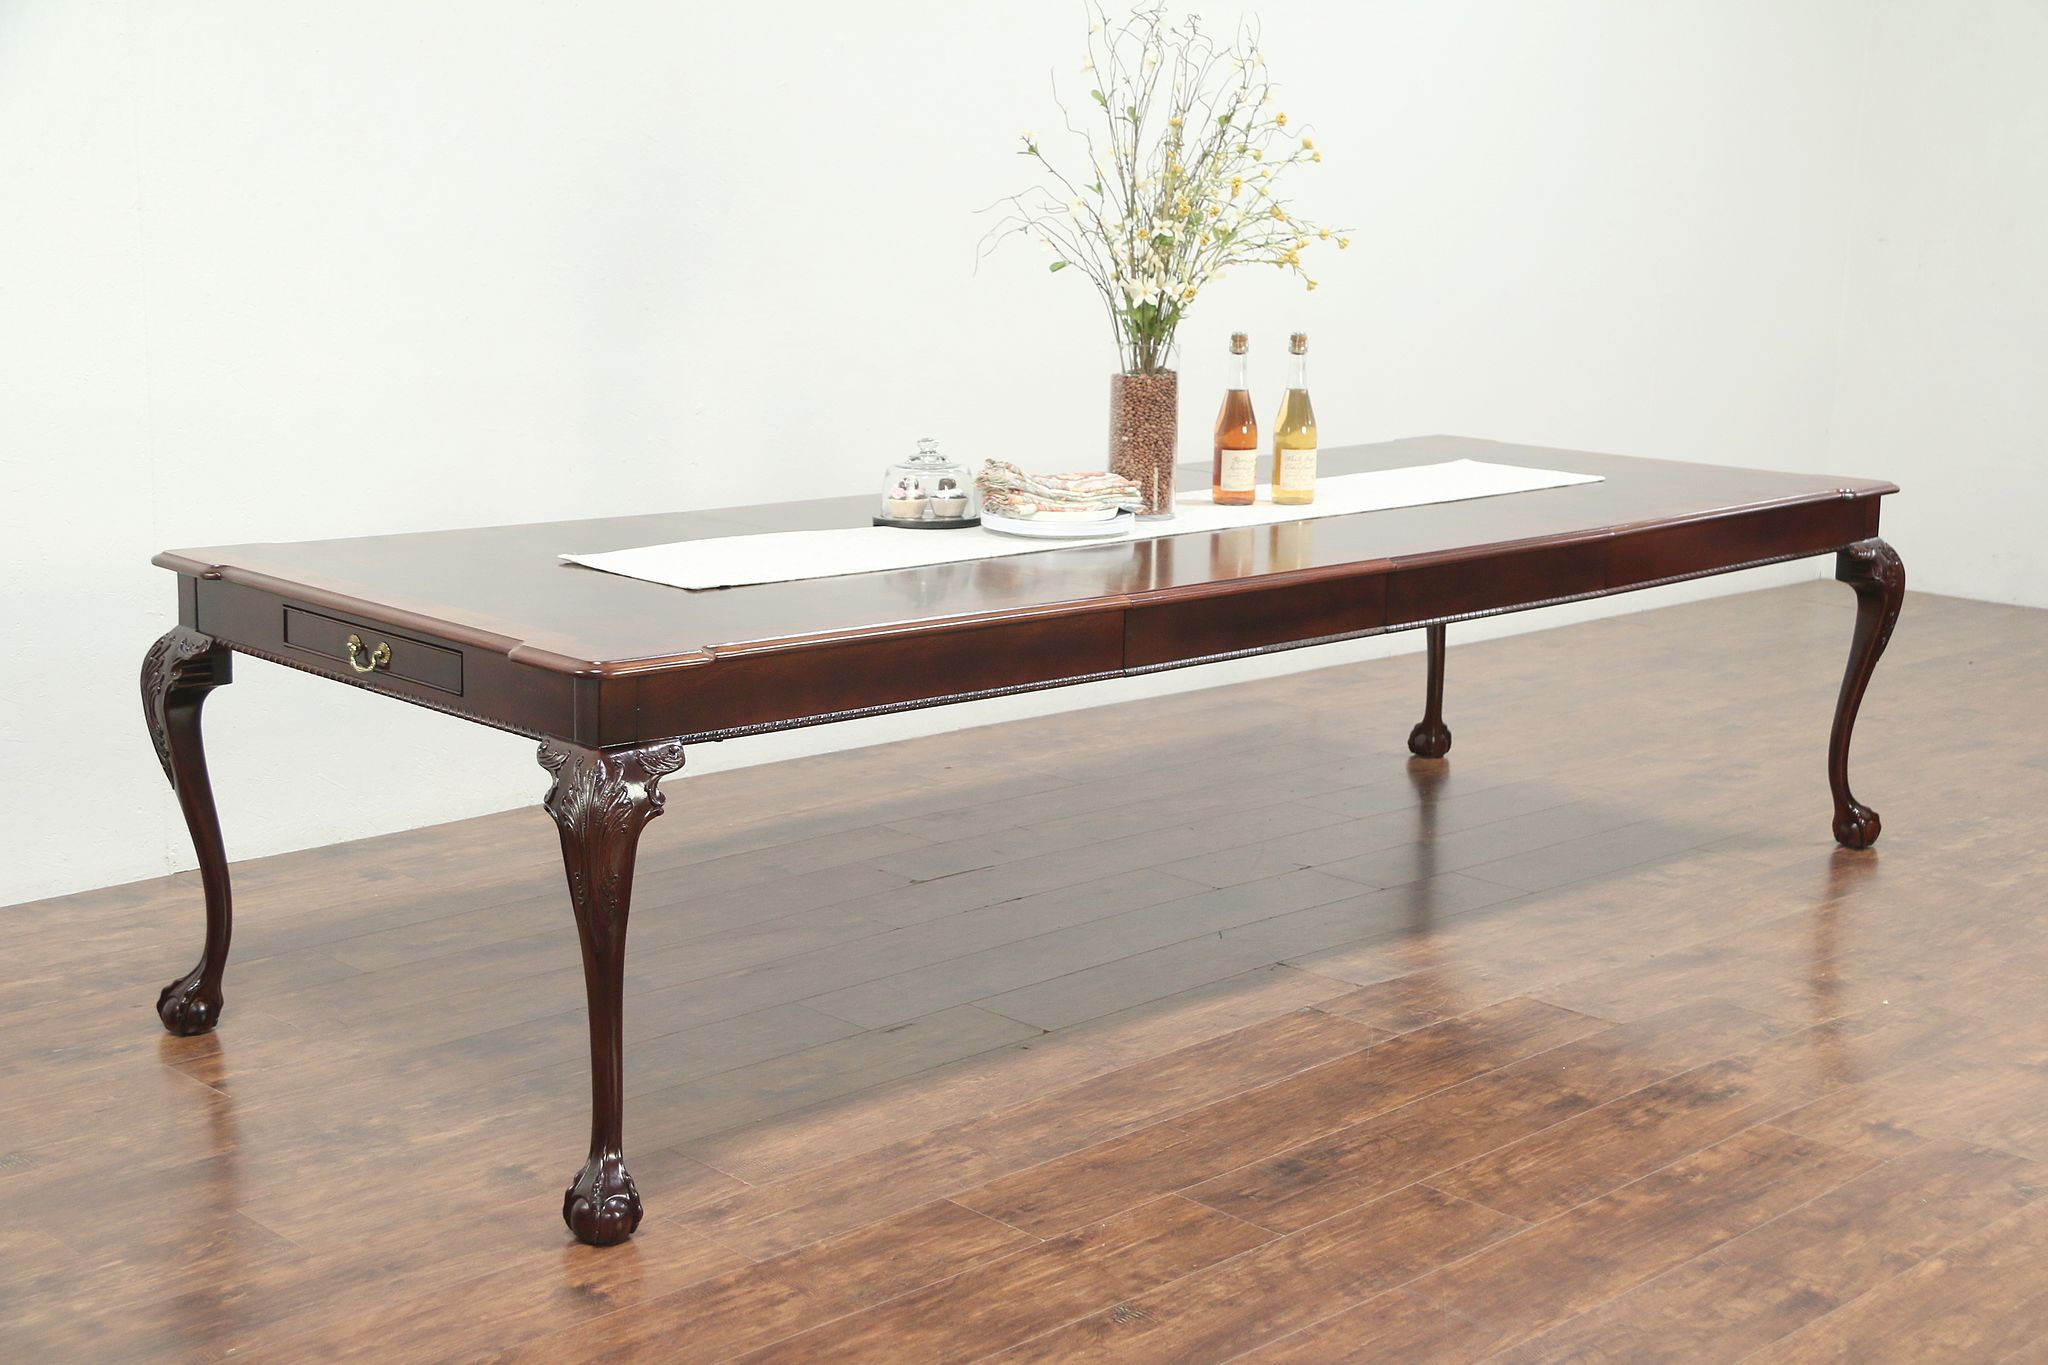 Henredon Rittenhouse Square Vintage Dining Table Extends 10 4 29103 Harp Gallery